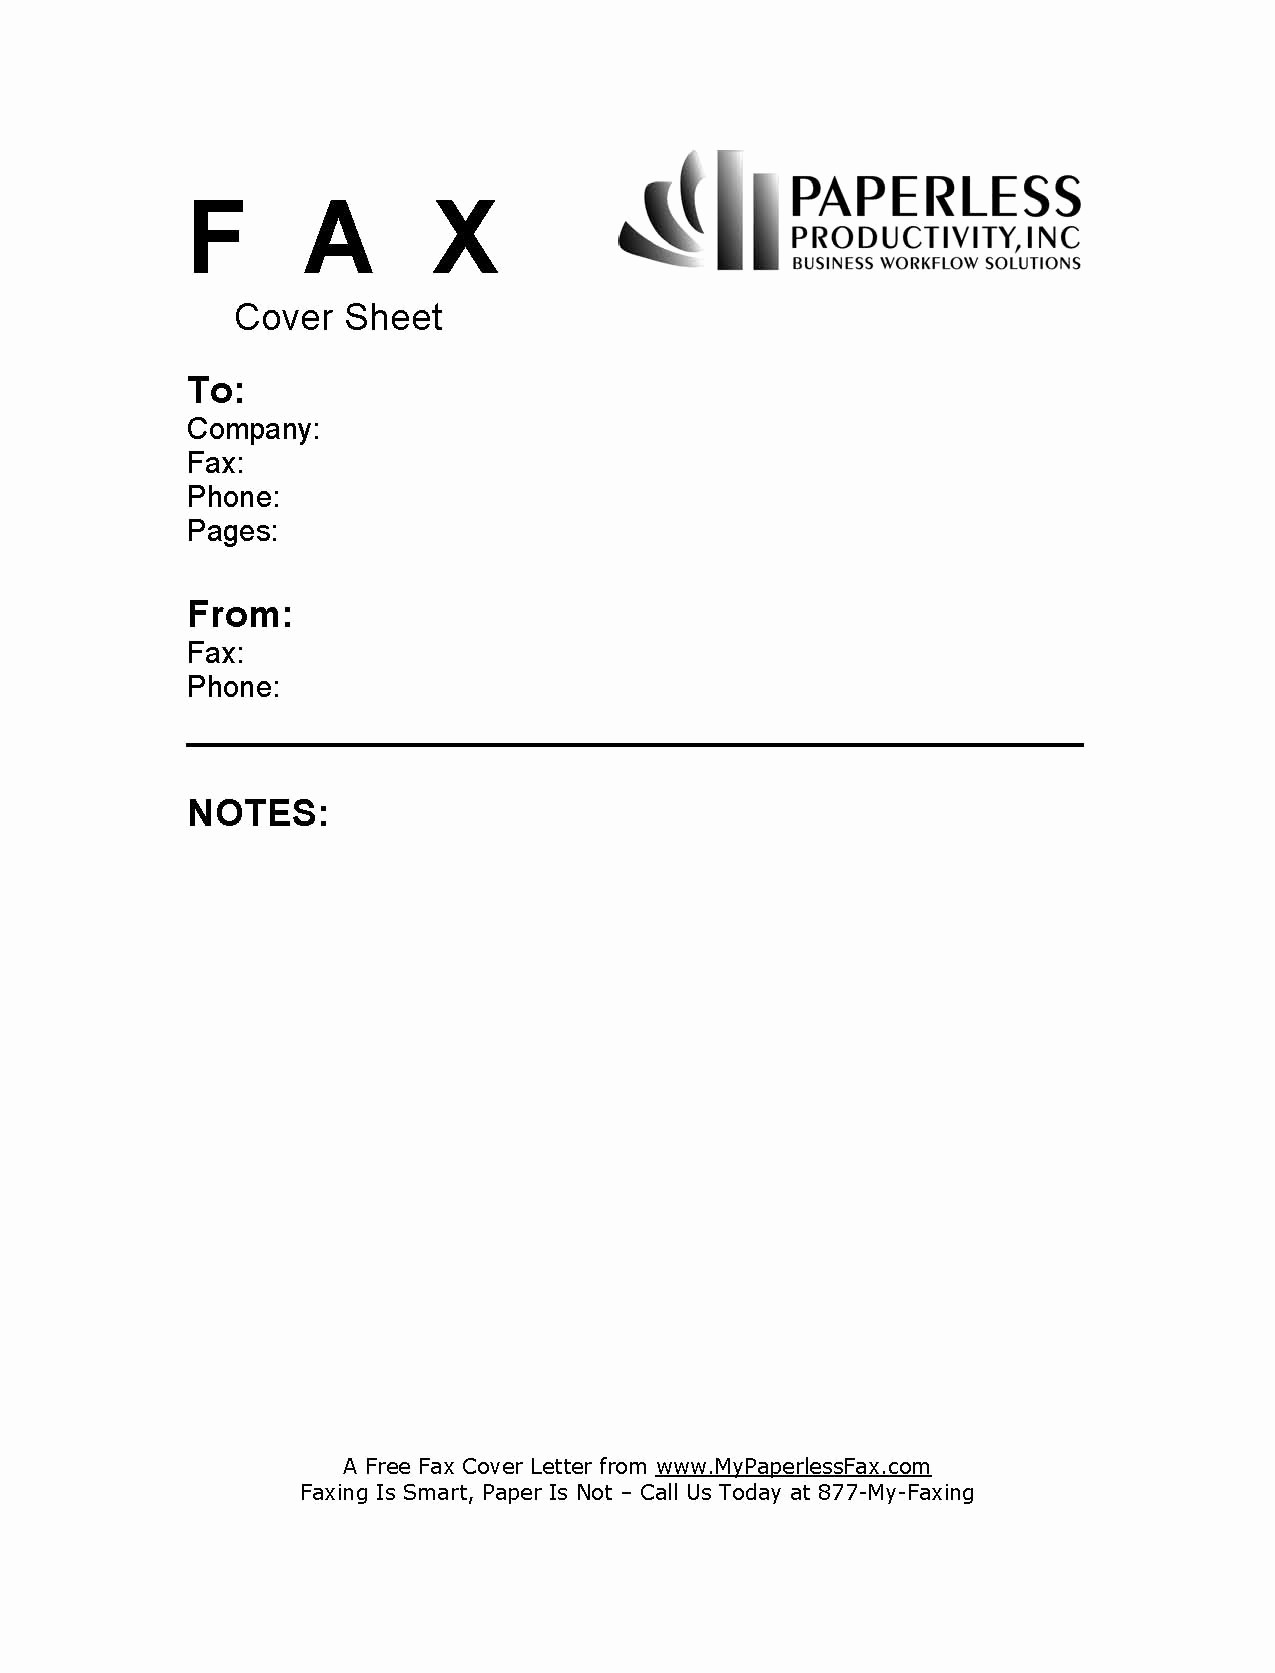 Cover Letter for Fax Document Inspirational Sample Fax Cover Page